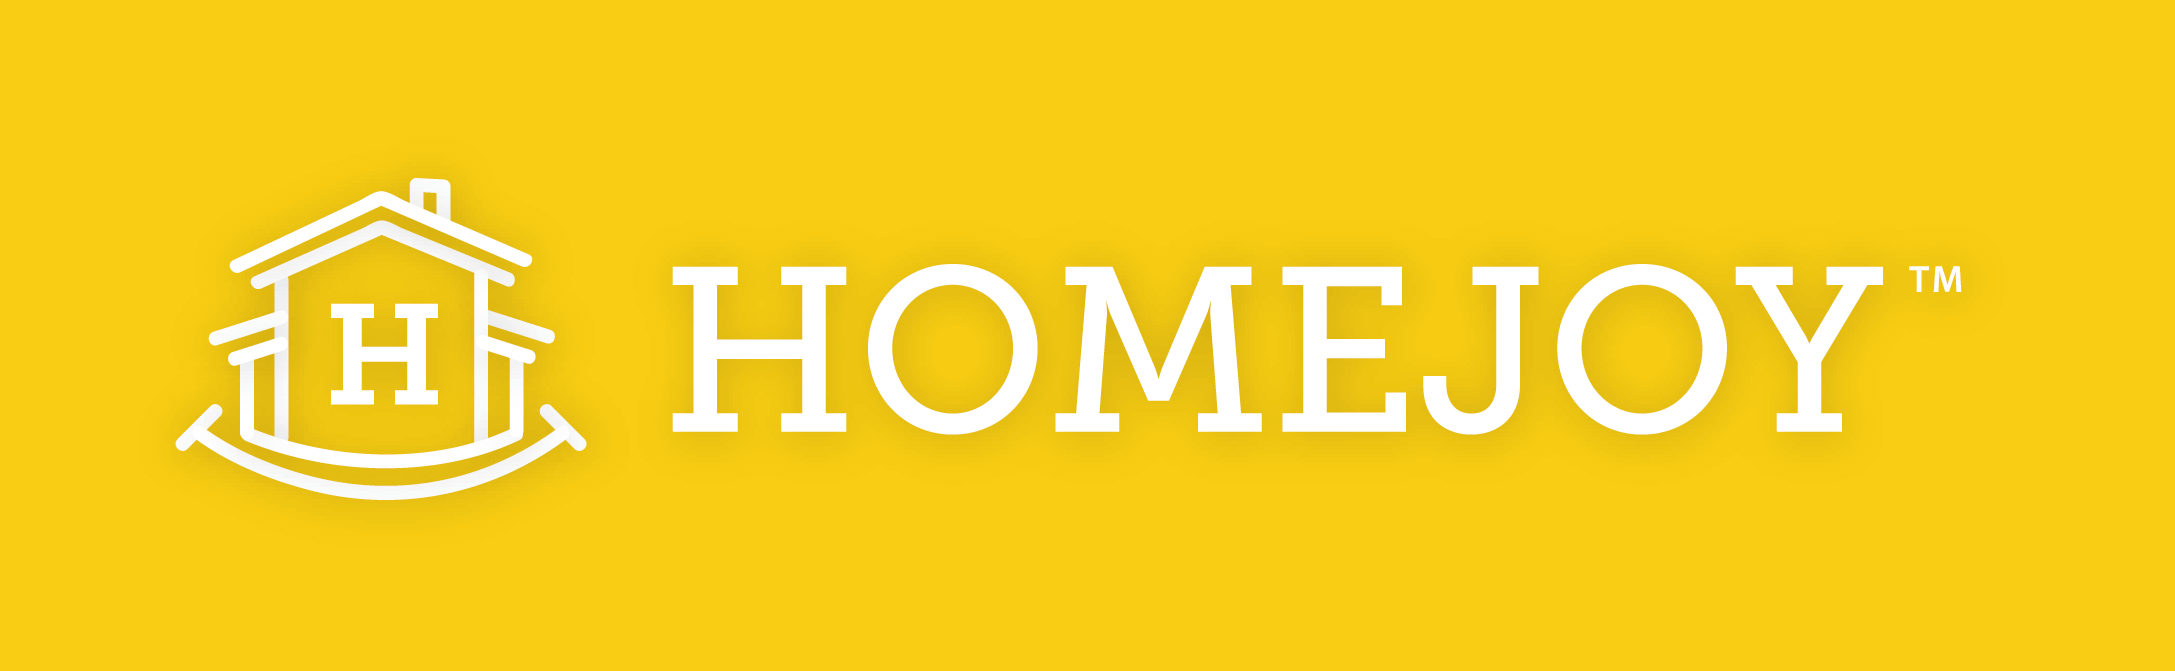 homejoy logo